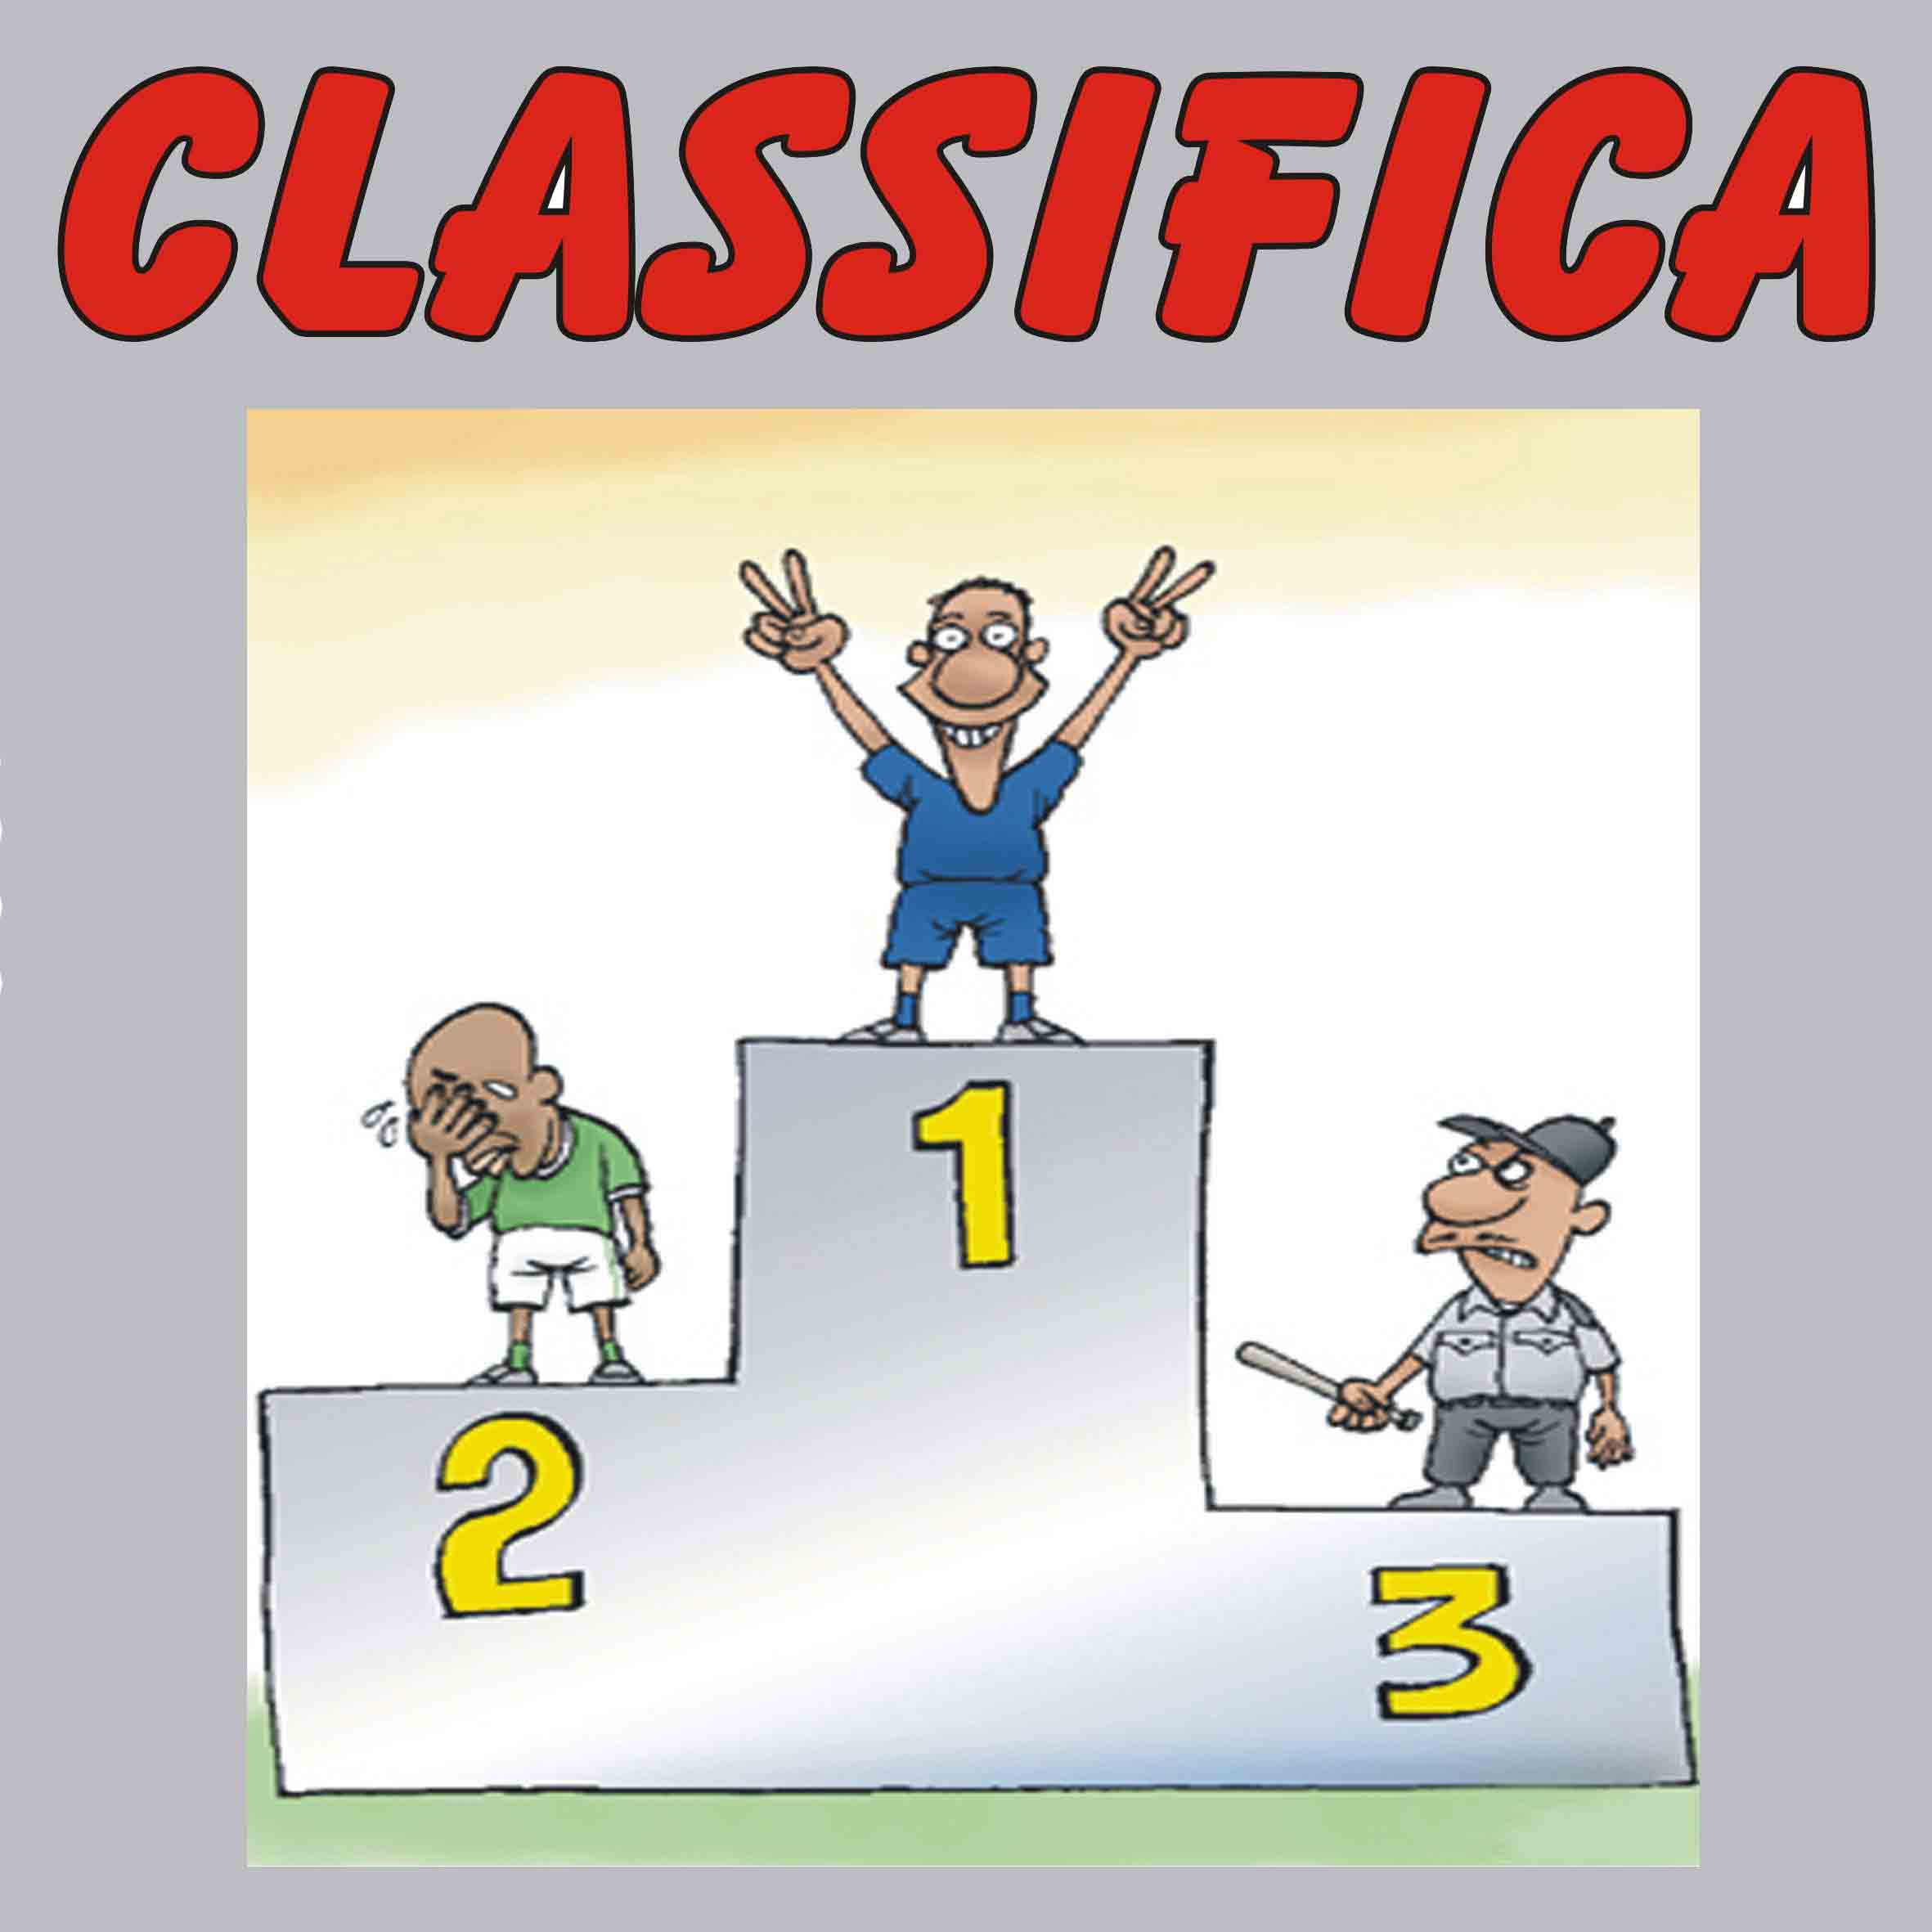 Classifica Quantità